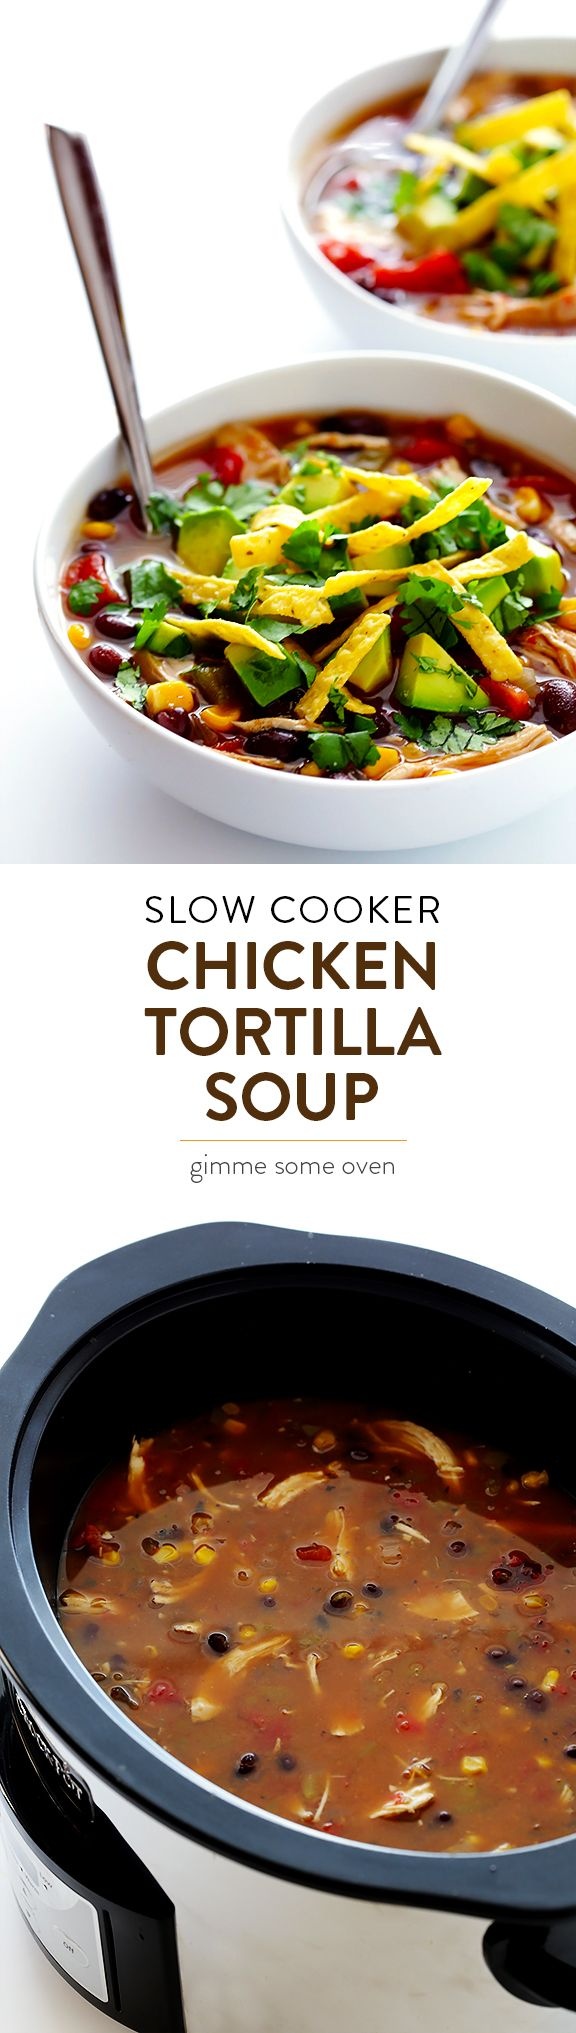 This Slow Cooker Chicken Tortilla Soup recipe only requires about 10 minutes of prep time, then let your crock pot do all the work!  So delicious, and also naturally gluten-free. | gimmesomeoven.com